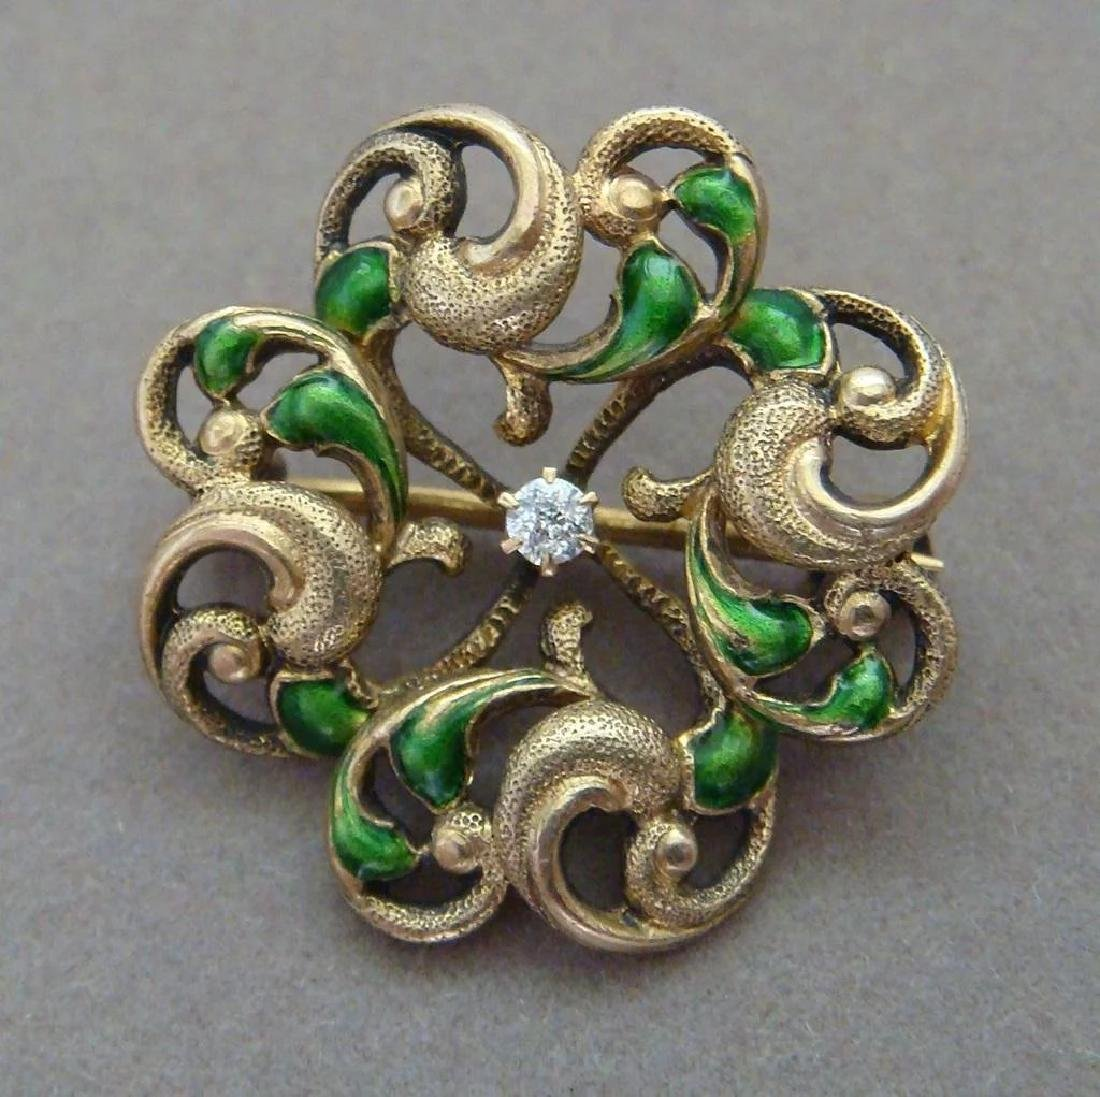 Art Nouveau 14K Gold Green Enamel Diamond Brooch - 4